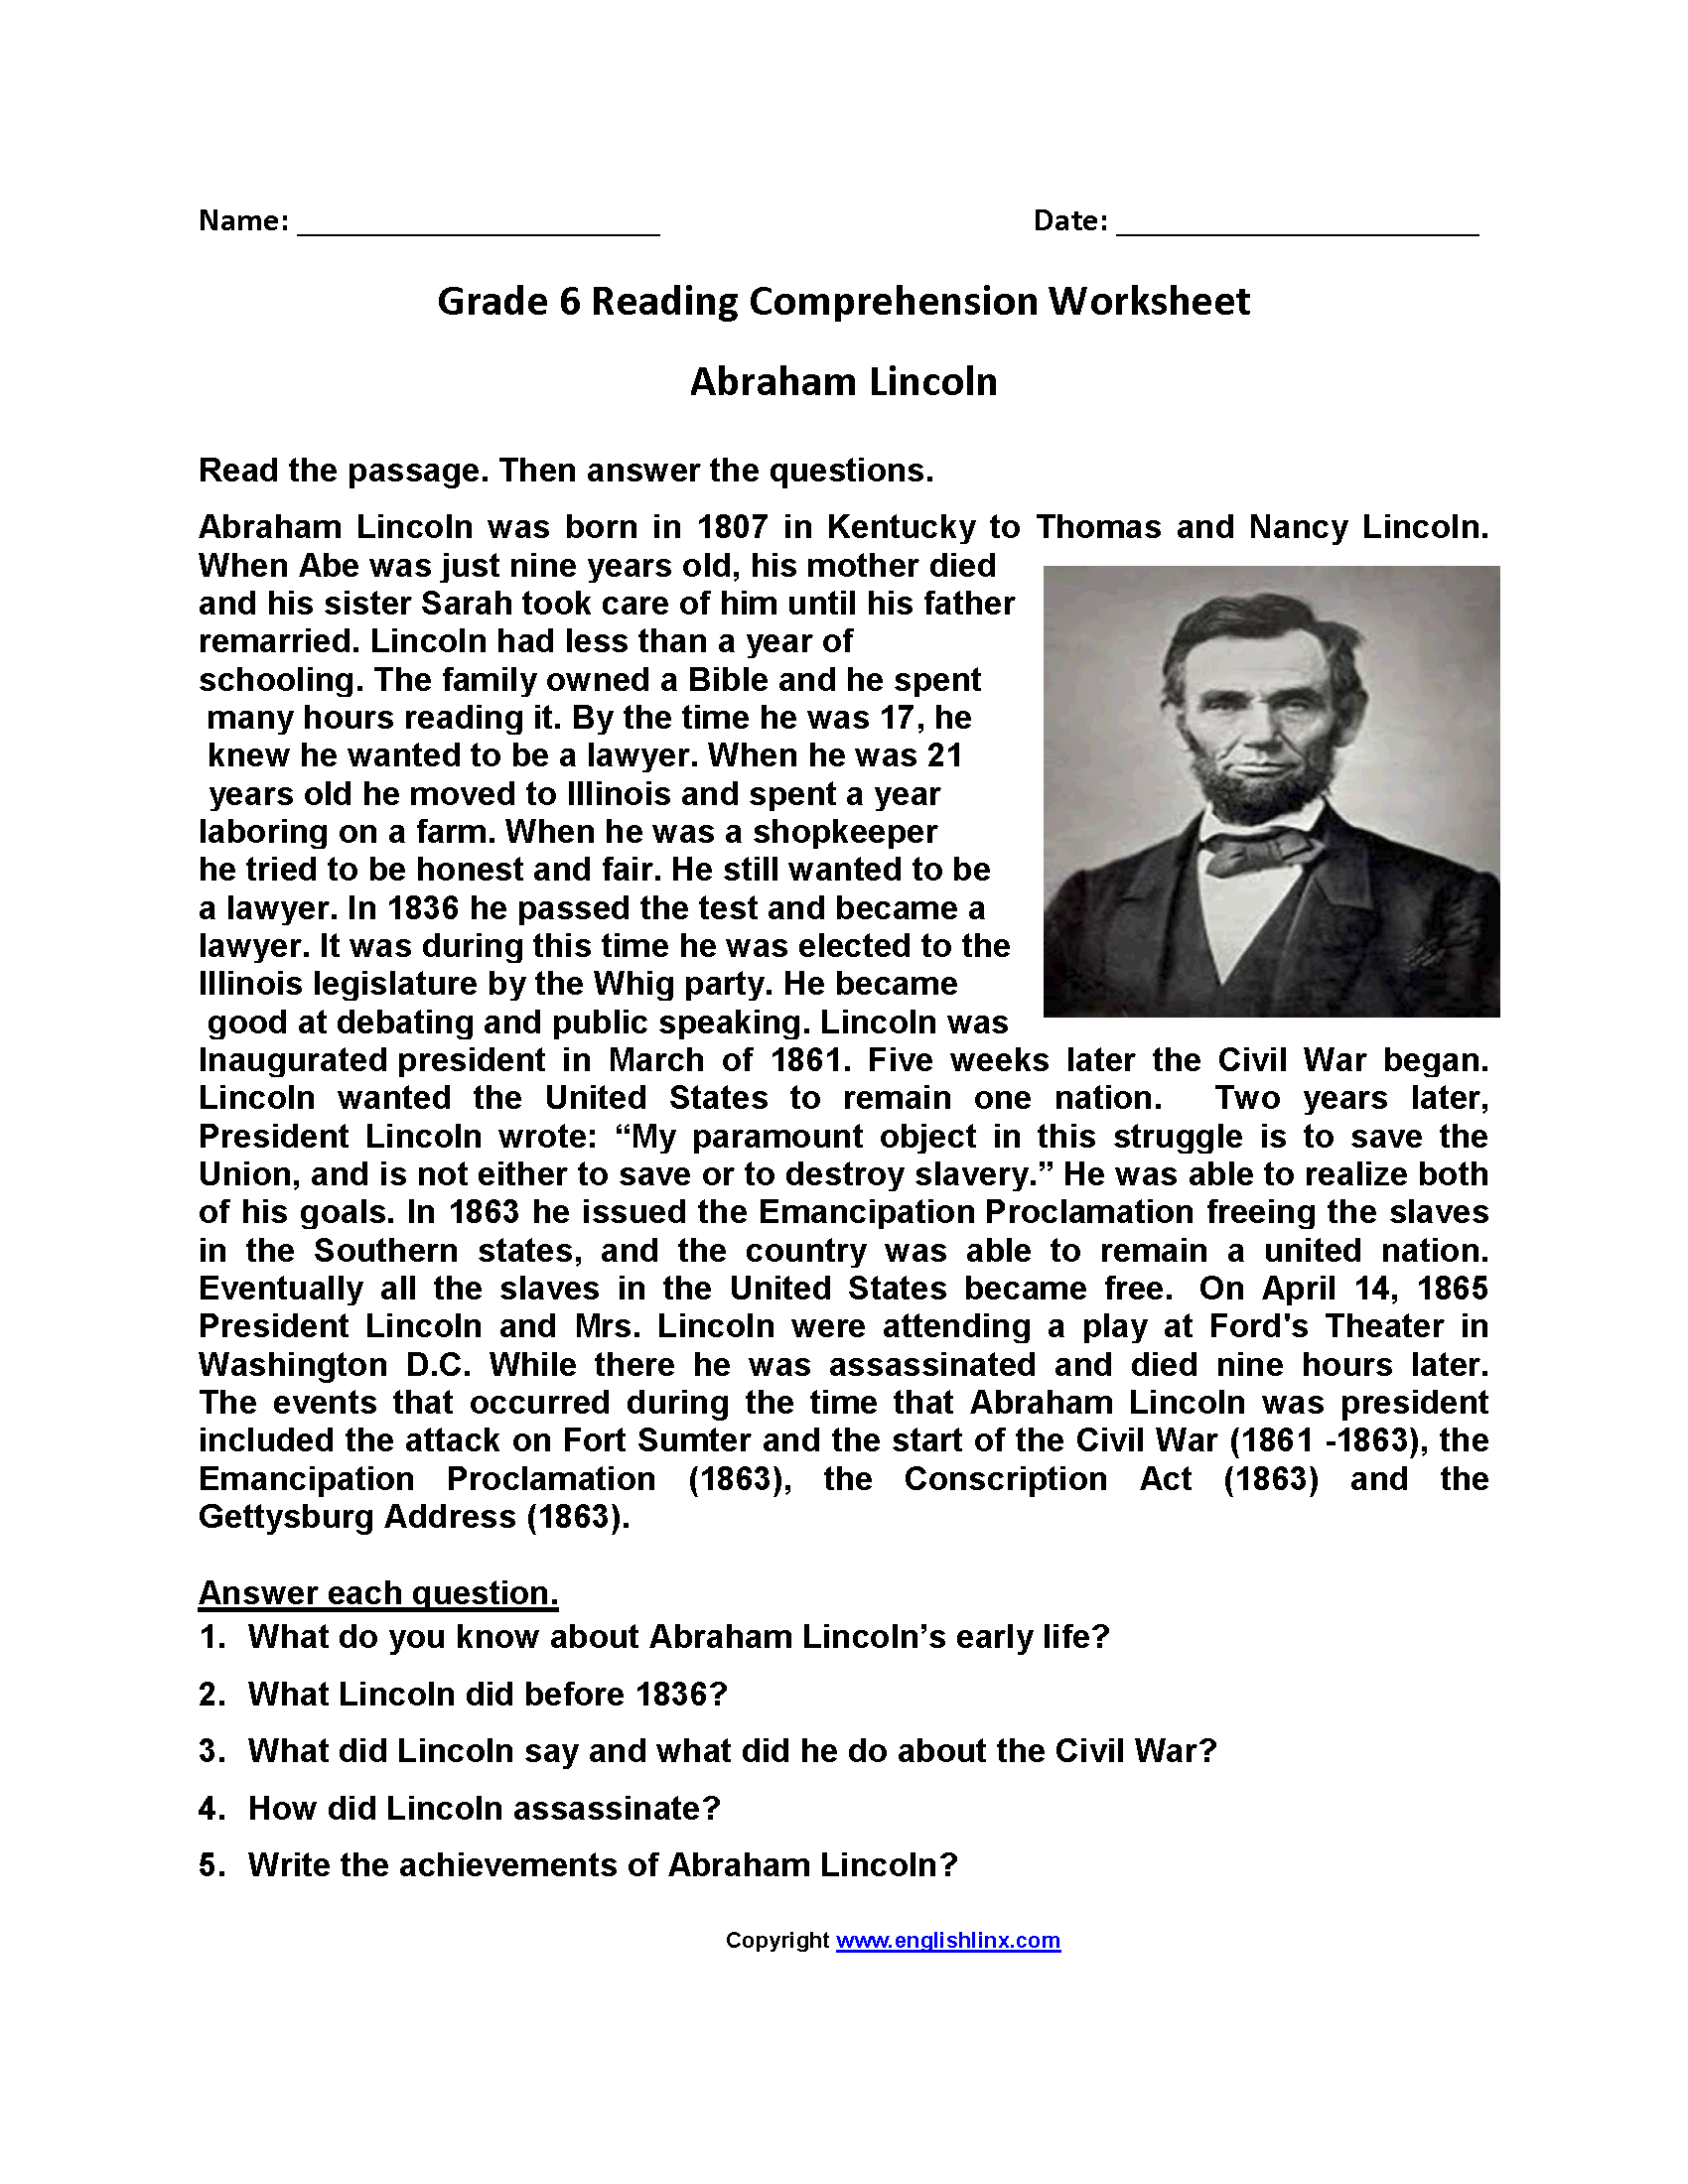 Worksheets Worksheets For 6th Grade Reading english worksheets reading sixth grade worksheets